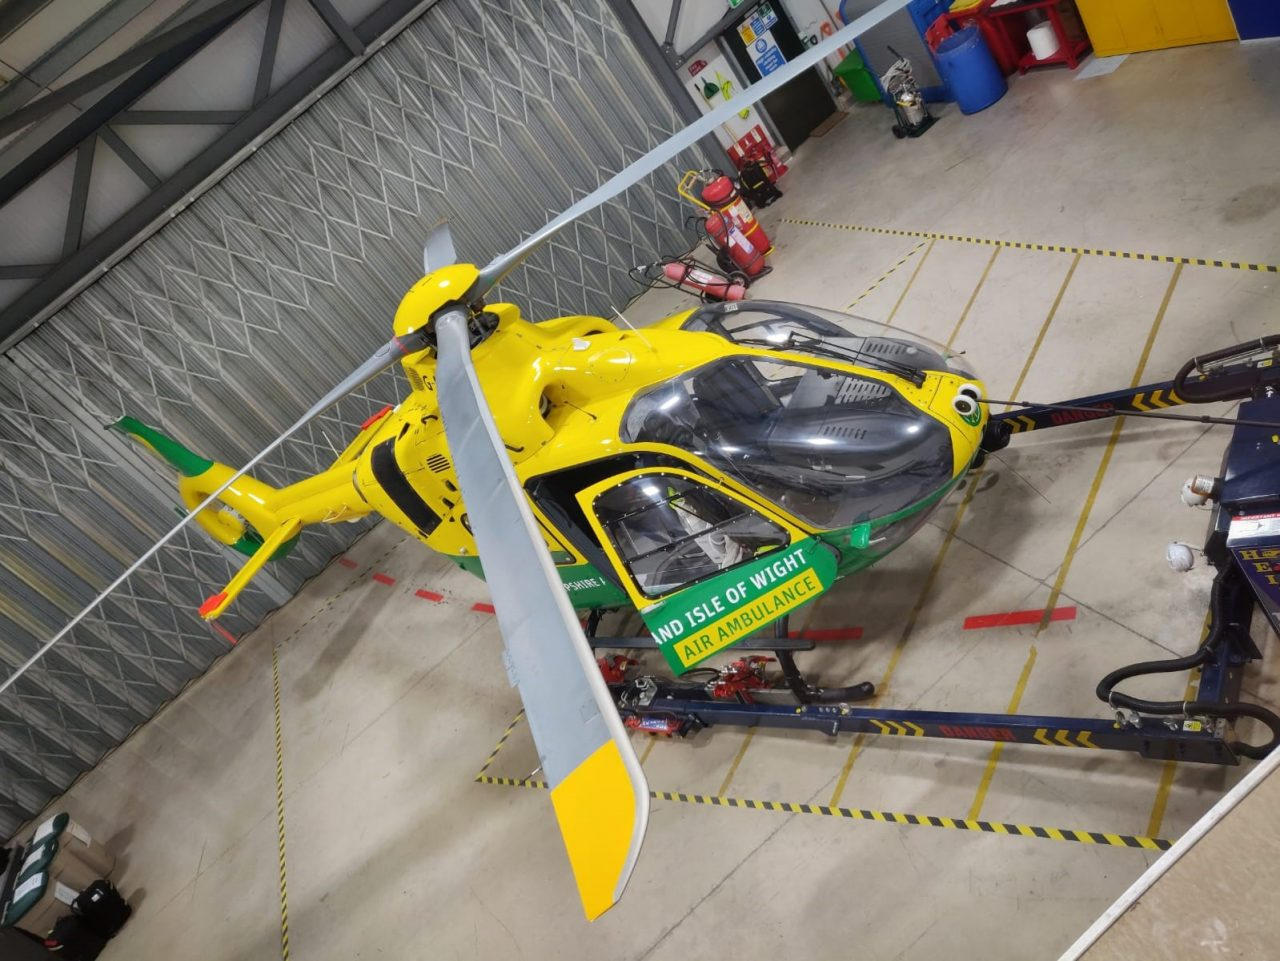 Go behind the scenes at the Hampshire and Isle of Wight Air Ambulance 'Virtual Airbase Tour'